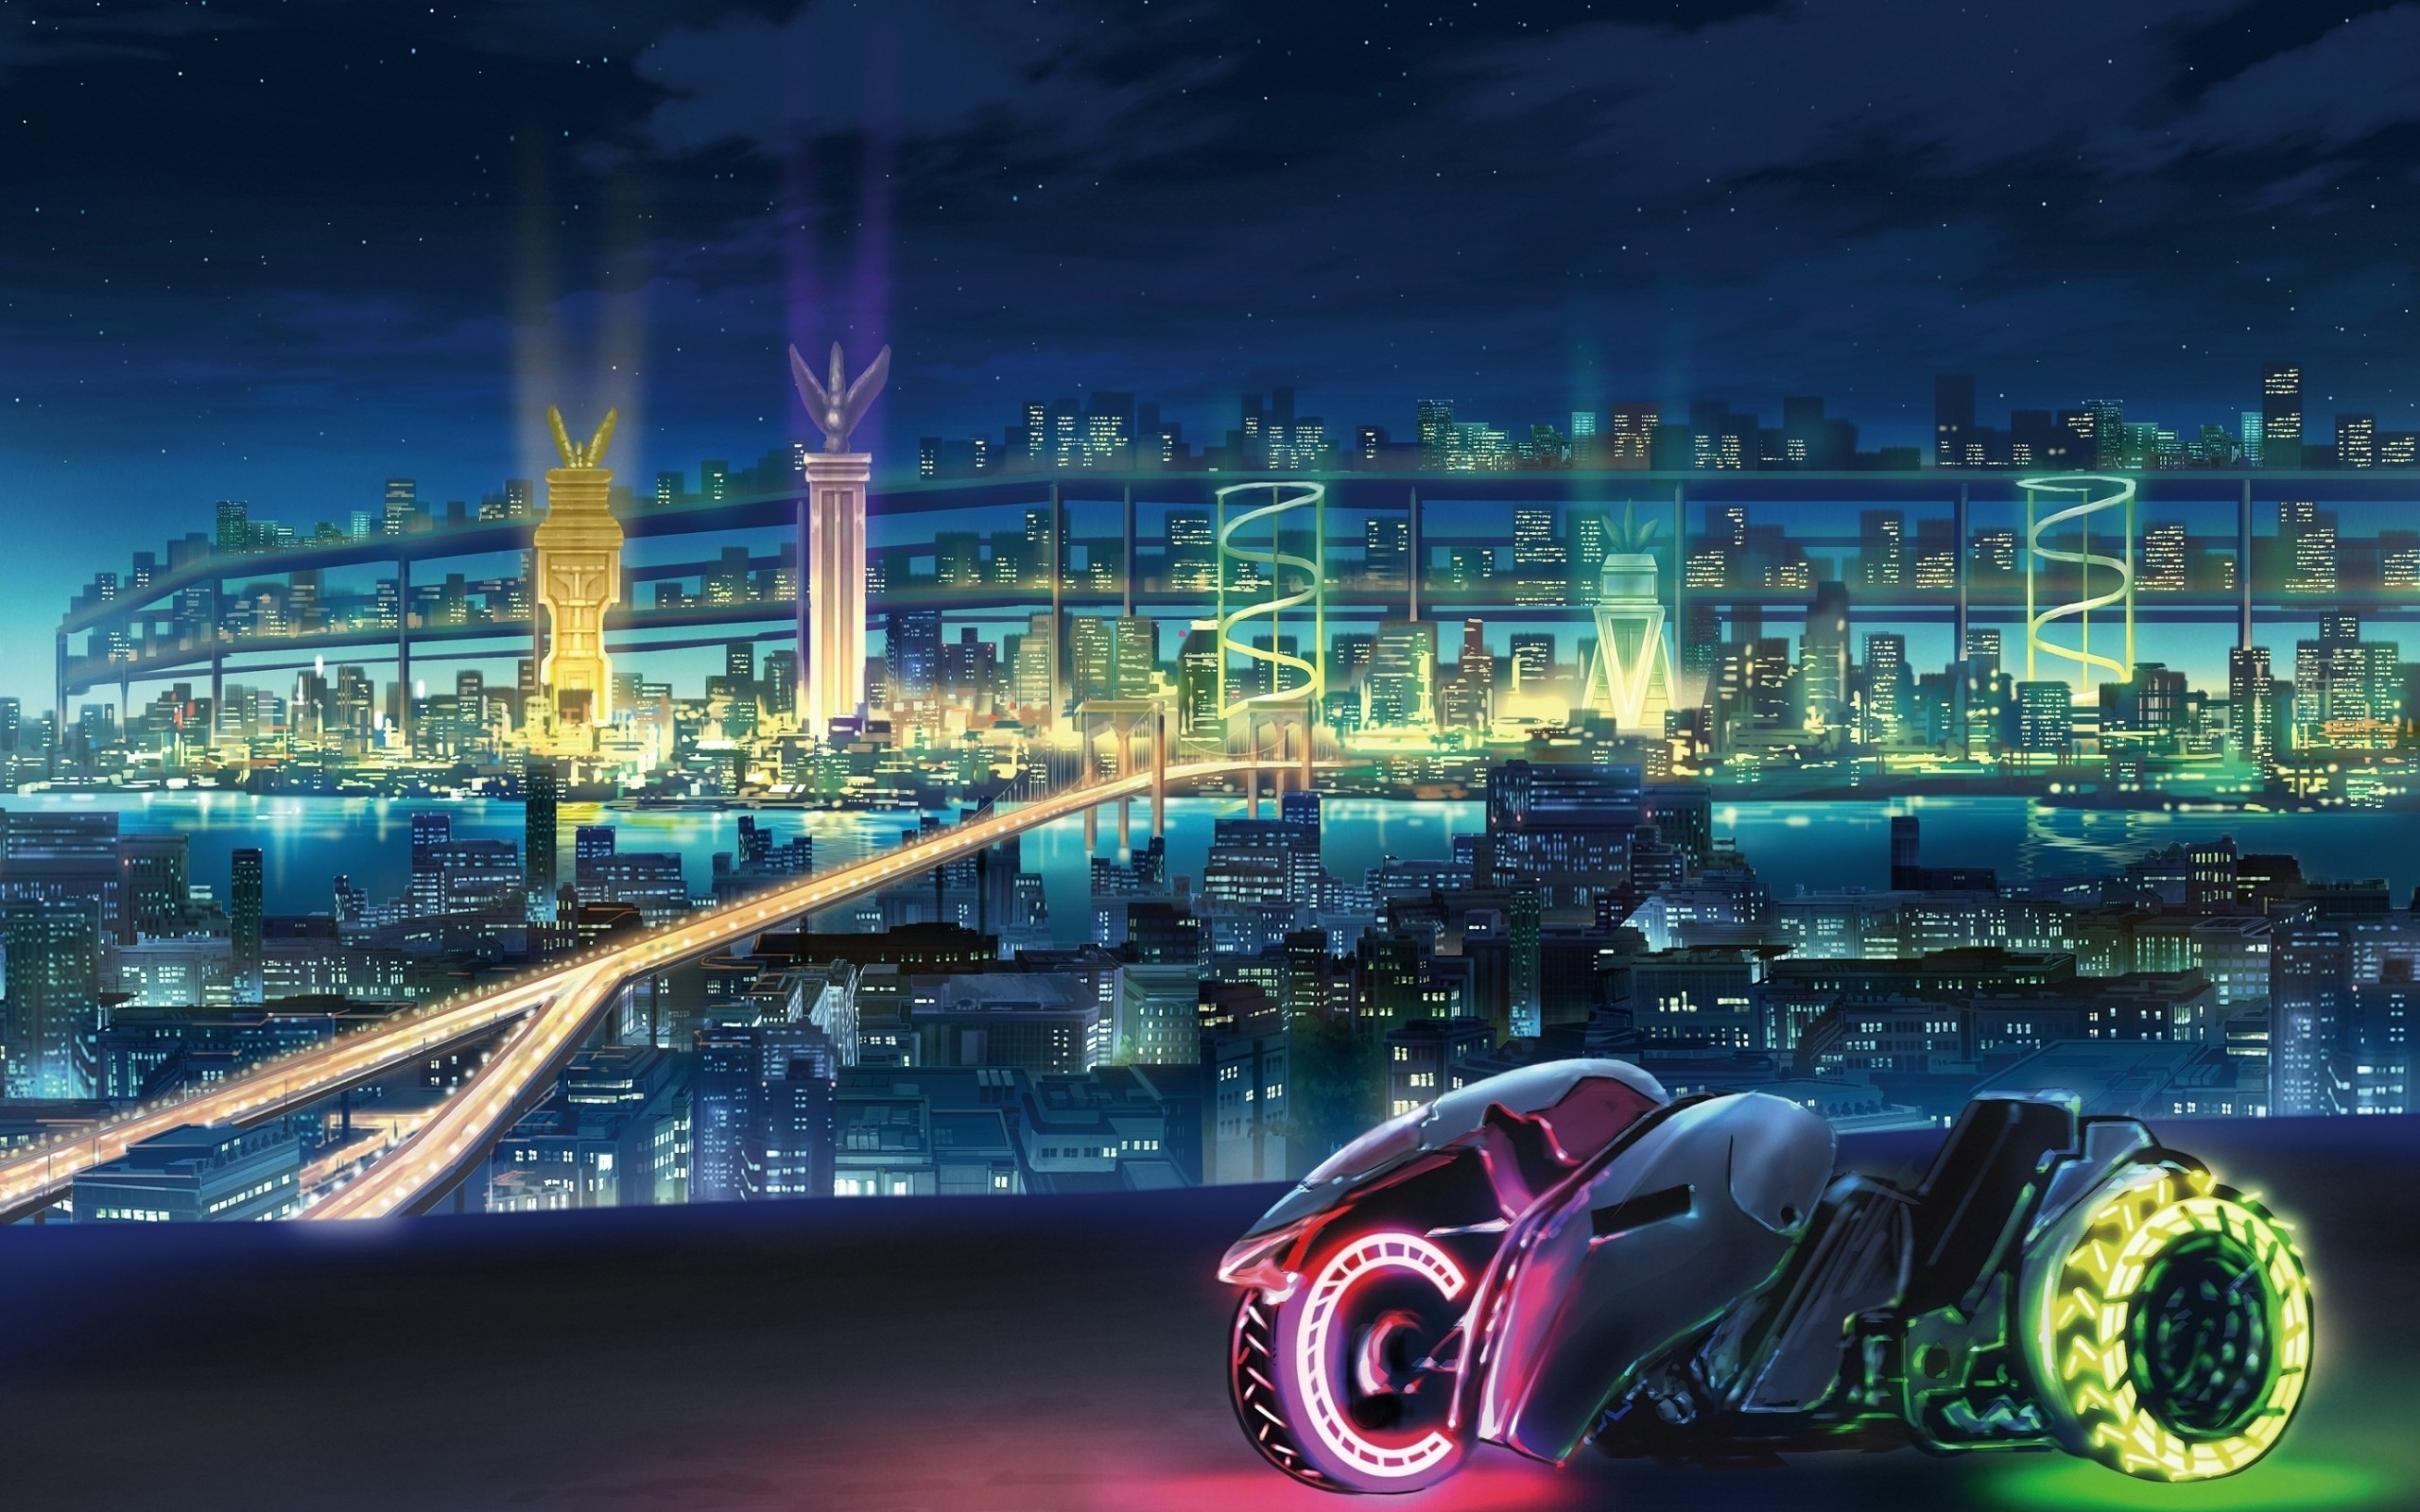 2560x1600 Wallpaper · Related image · Neon WallpaperSteampunk ...